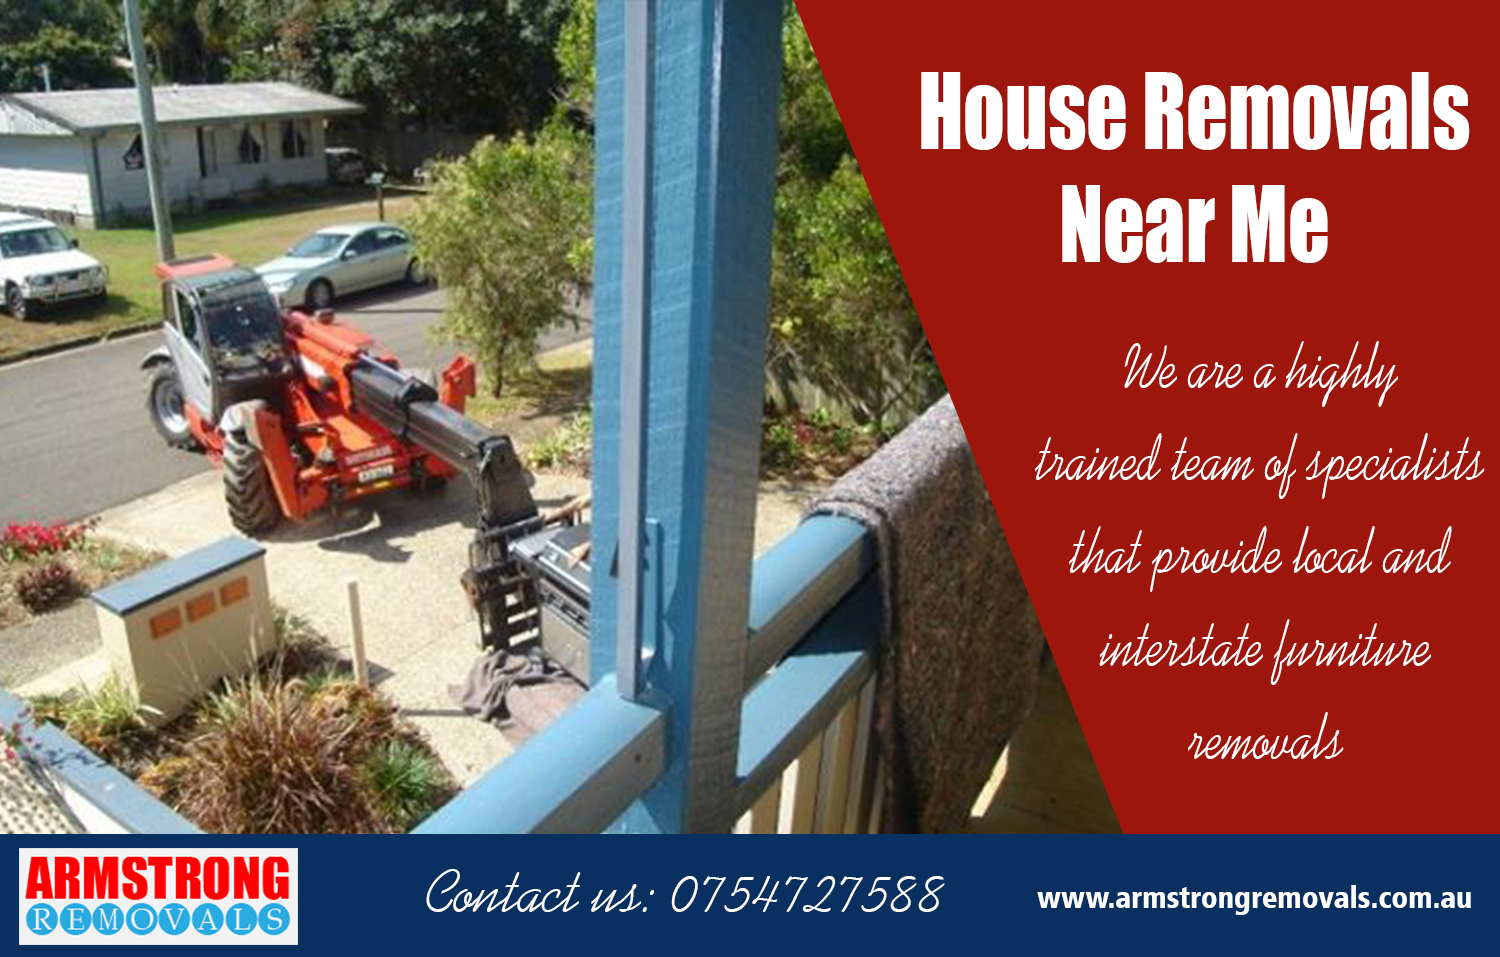 House Removals Near Me